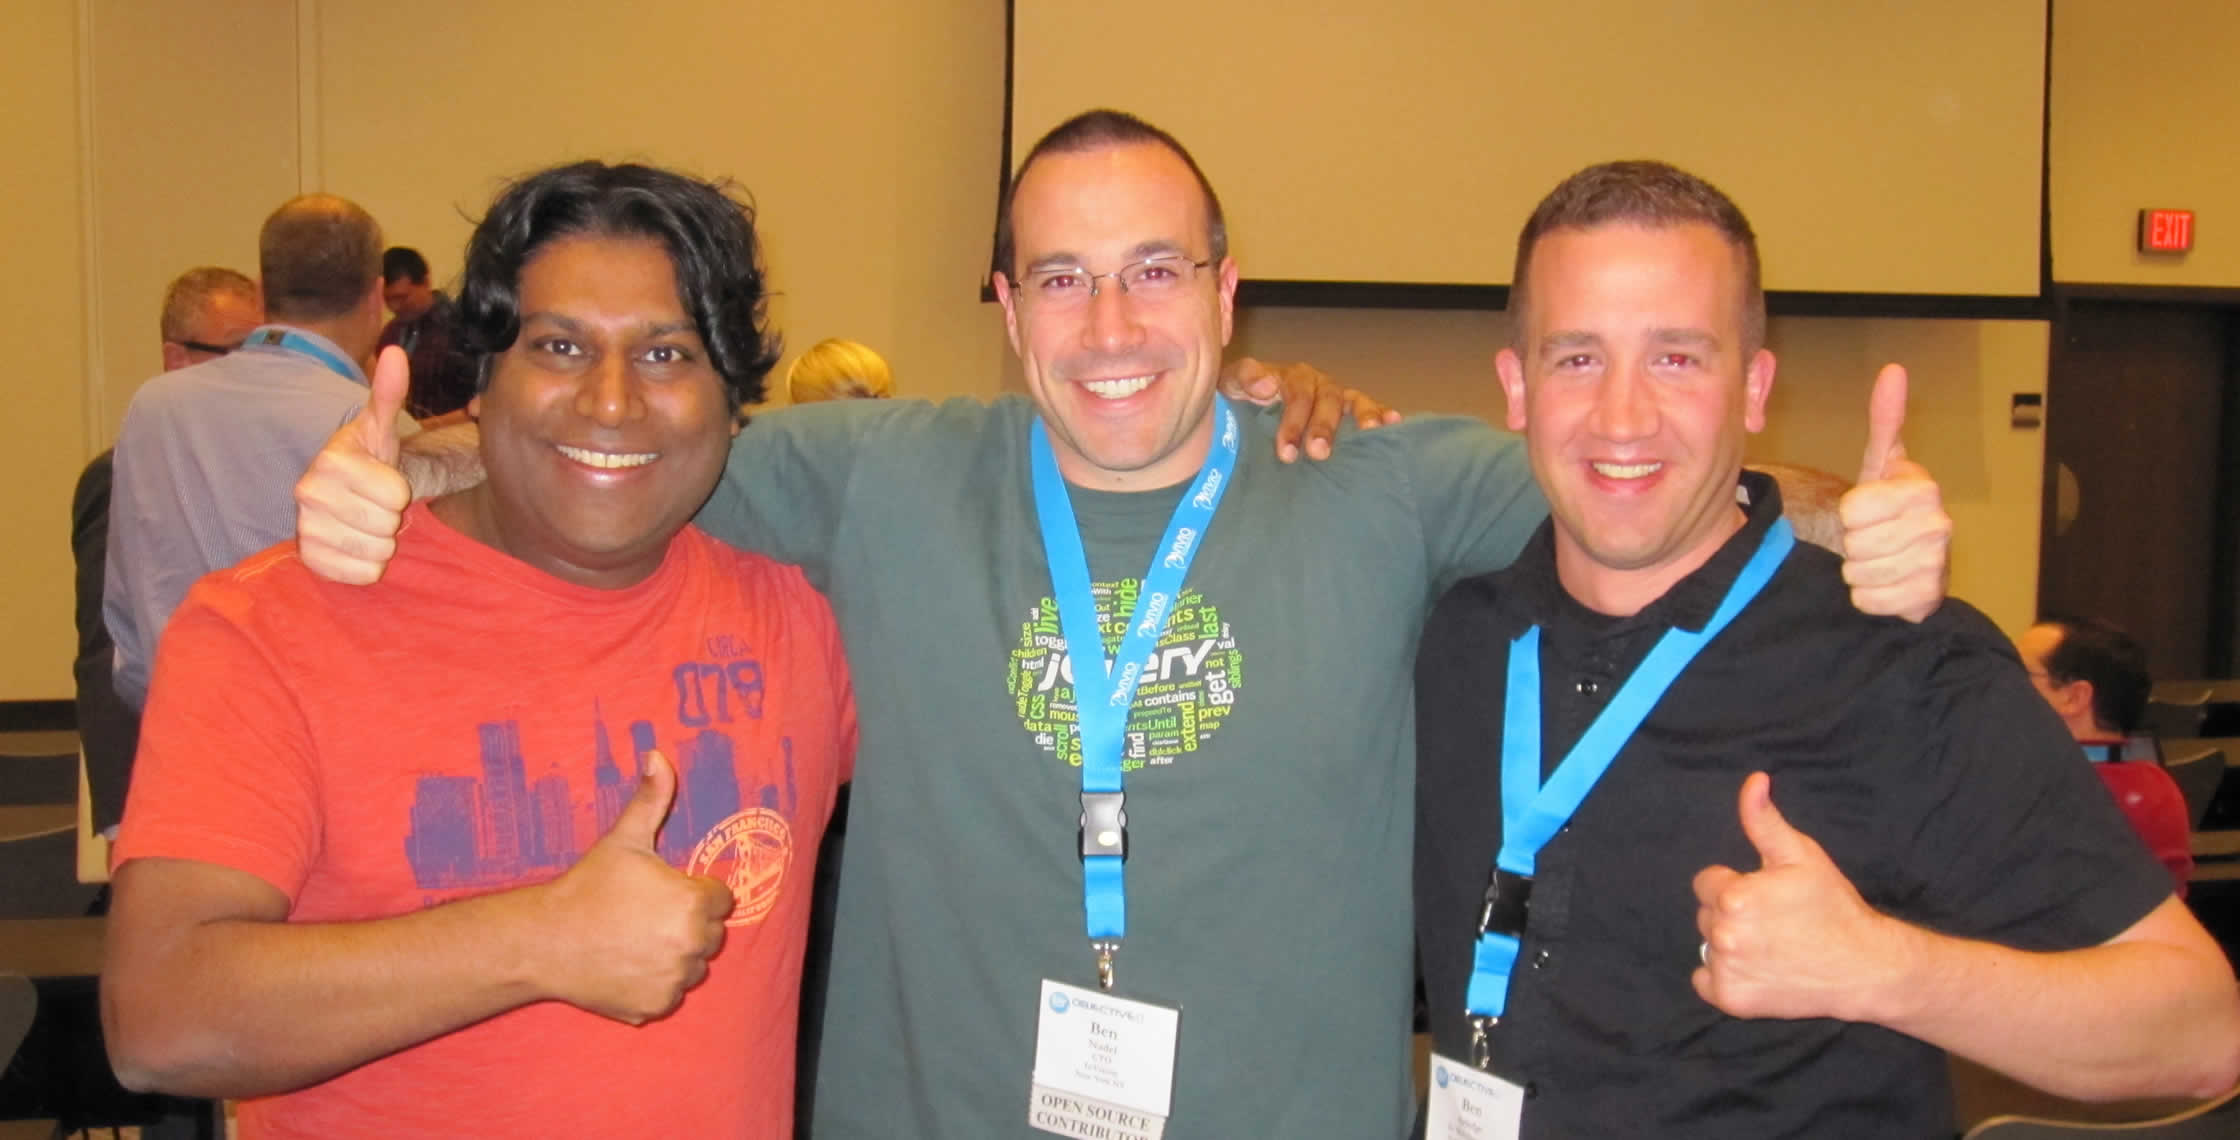 Ben Nadel at cf.Objective() 2013 (Bloomington, MN) with: Ben Koshy and Ben Arledge